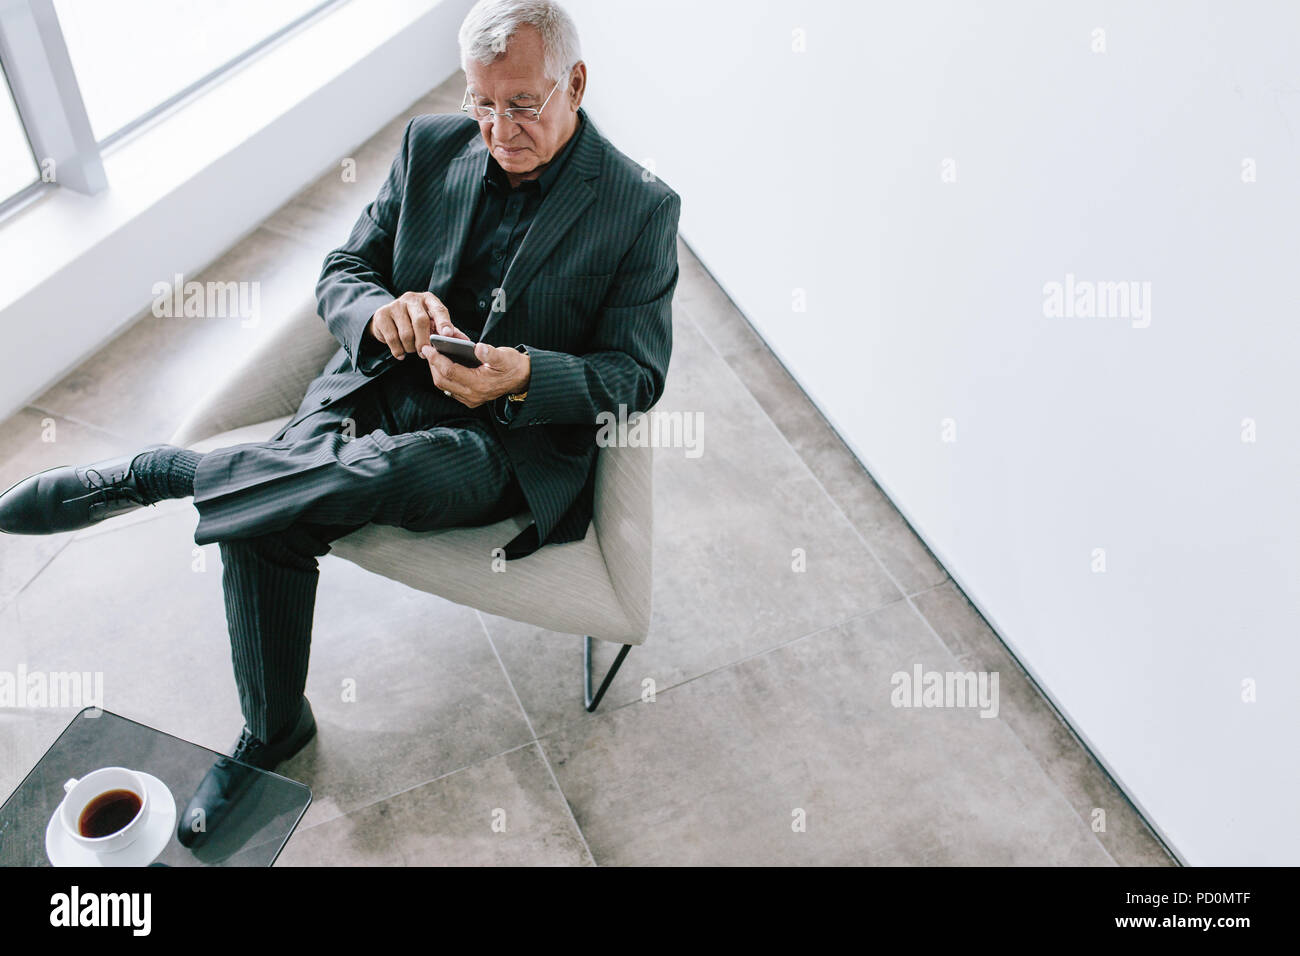 To view of old businessman using with mobile phone in office lobby. Mature corporate professional reading text message on his smartphone during break. - Stock Image